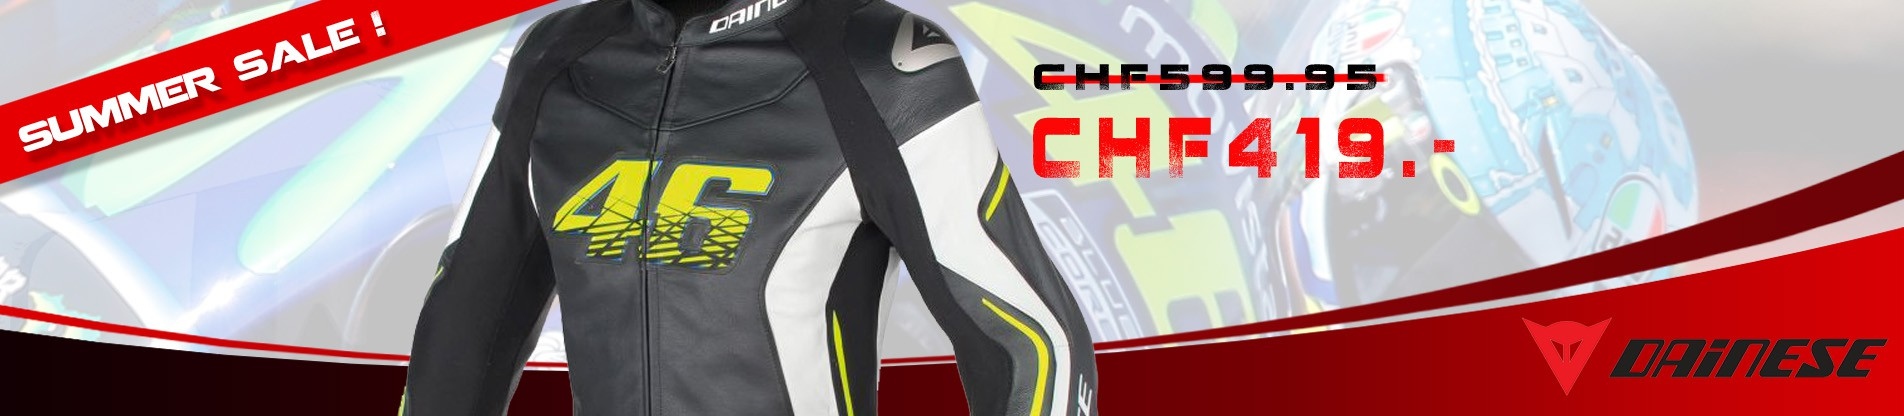 Dainese VR46 D2 Leather Jacket Summer Sale